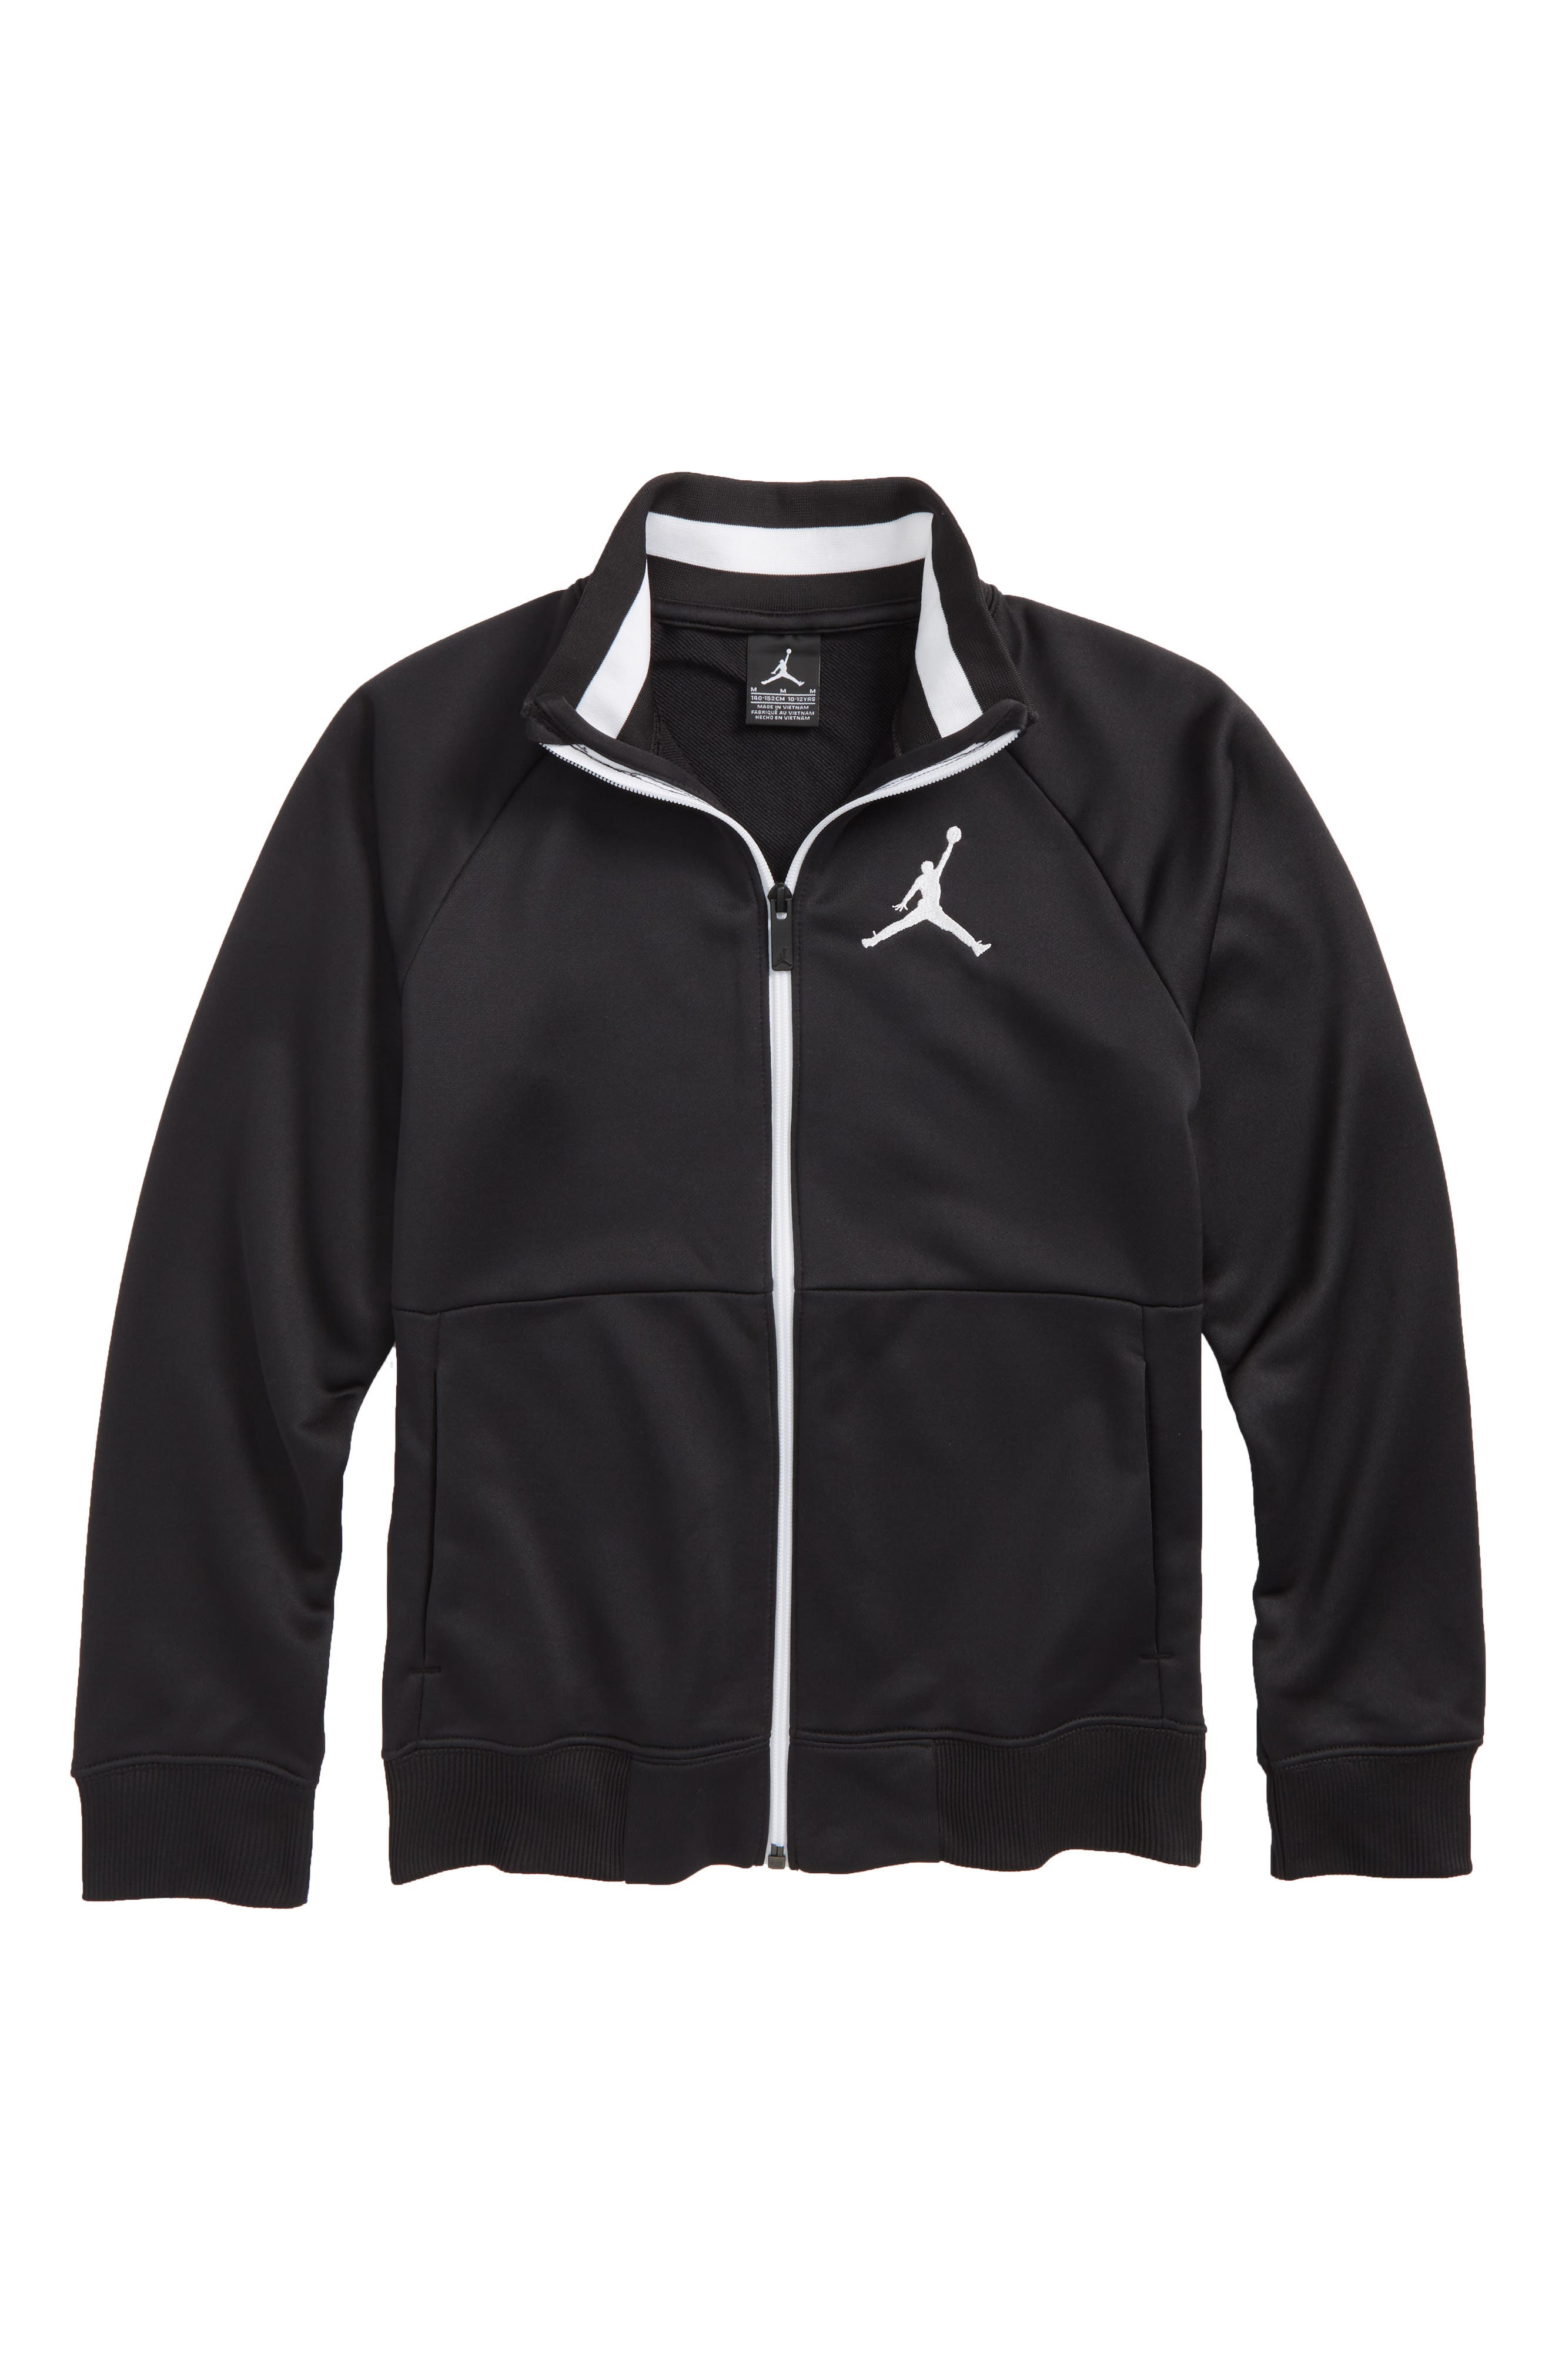 Jordan AJ 90s Tricot Jacket,                         Main,                         color, 004